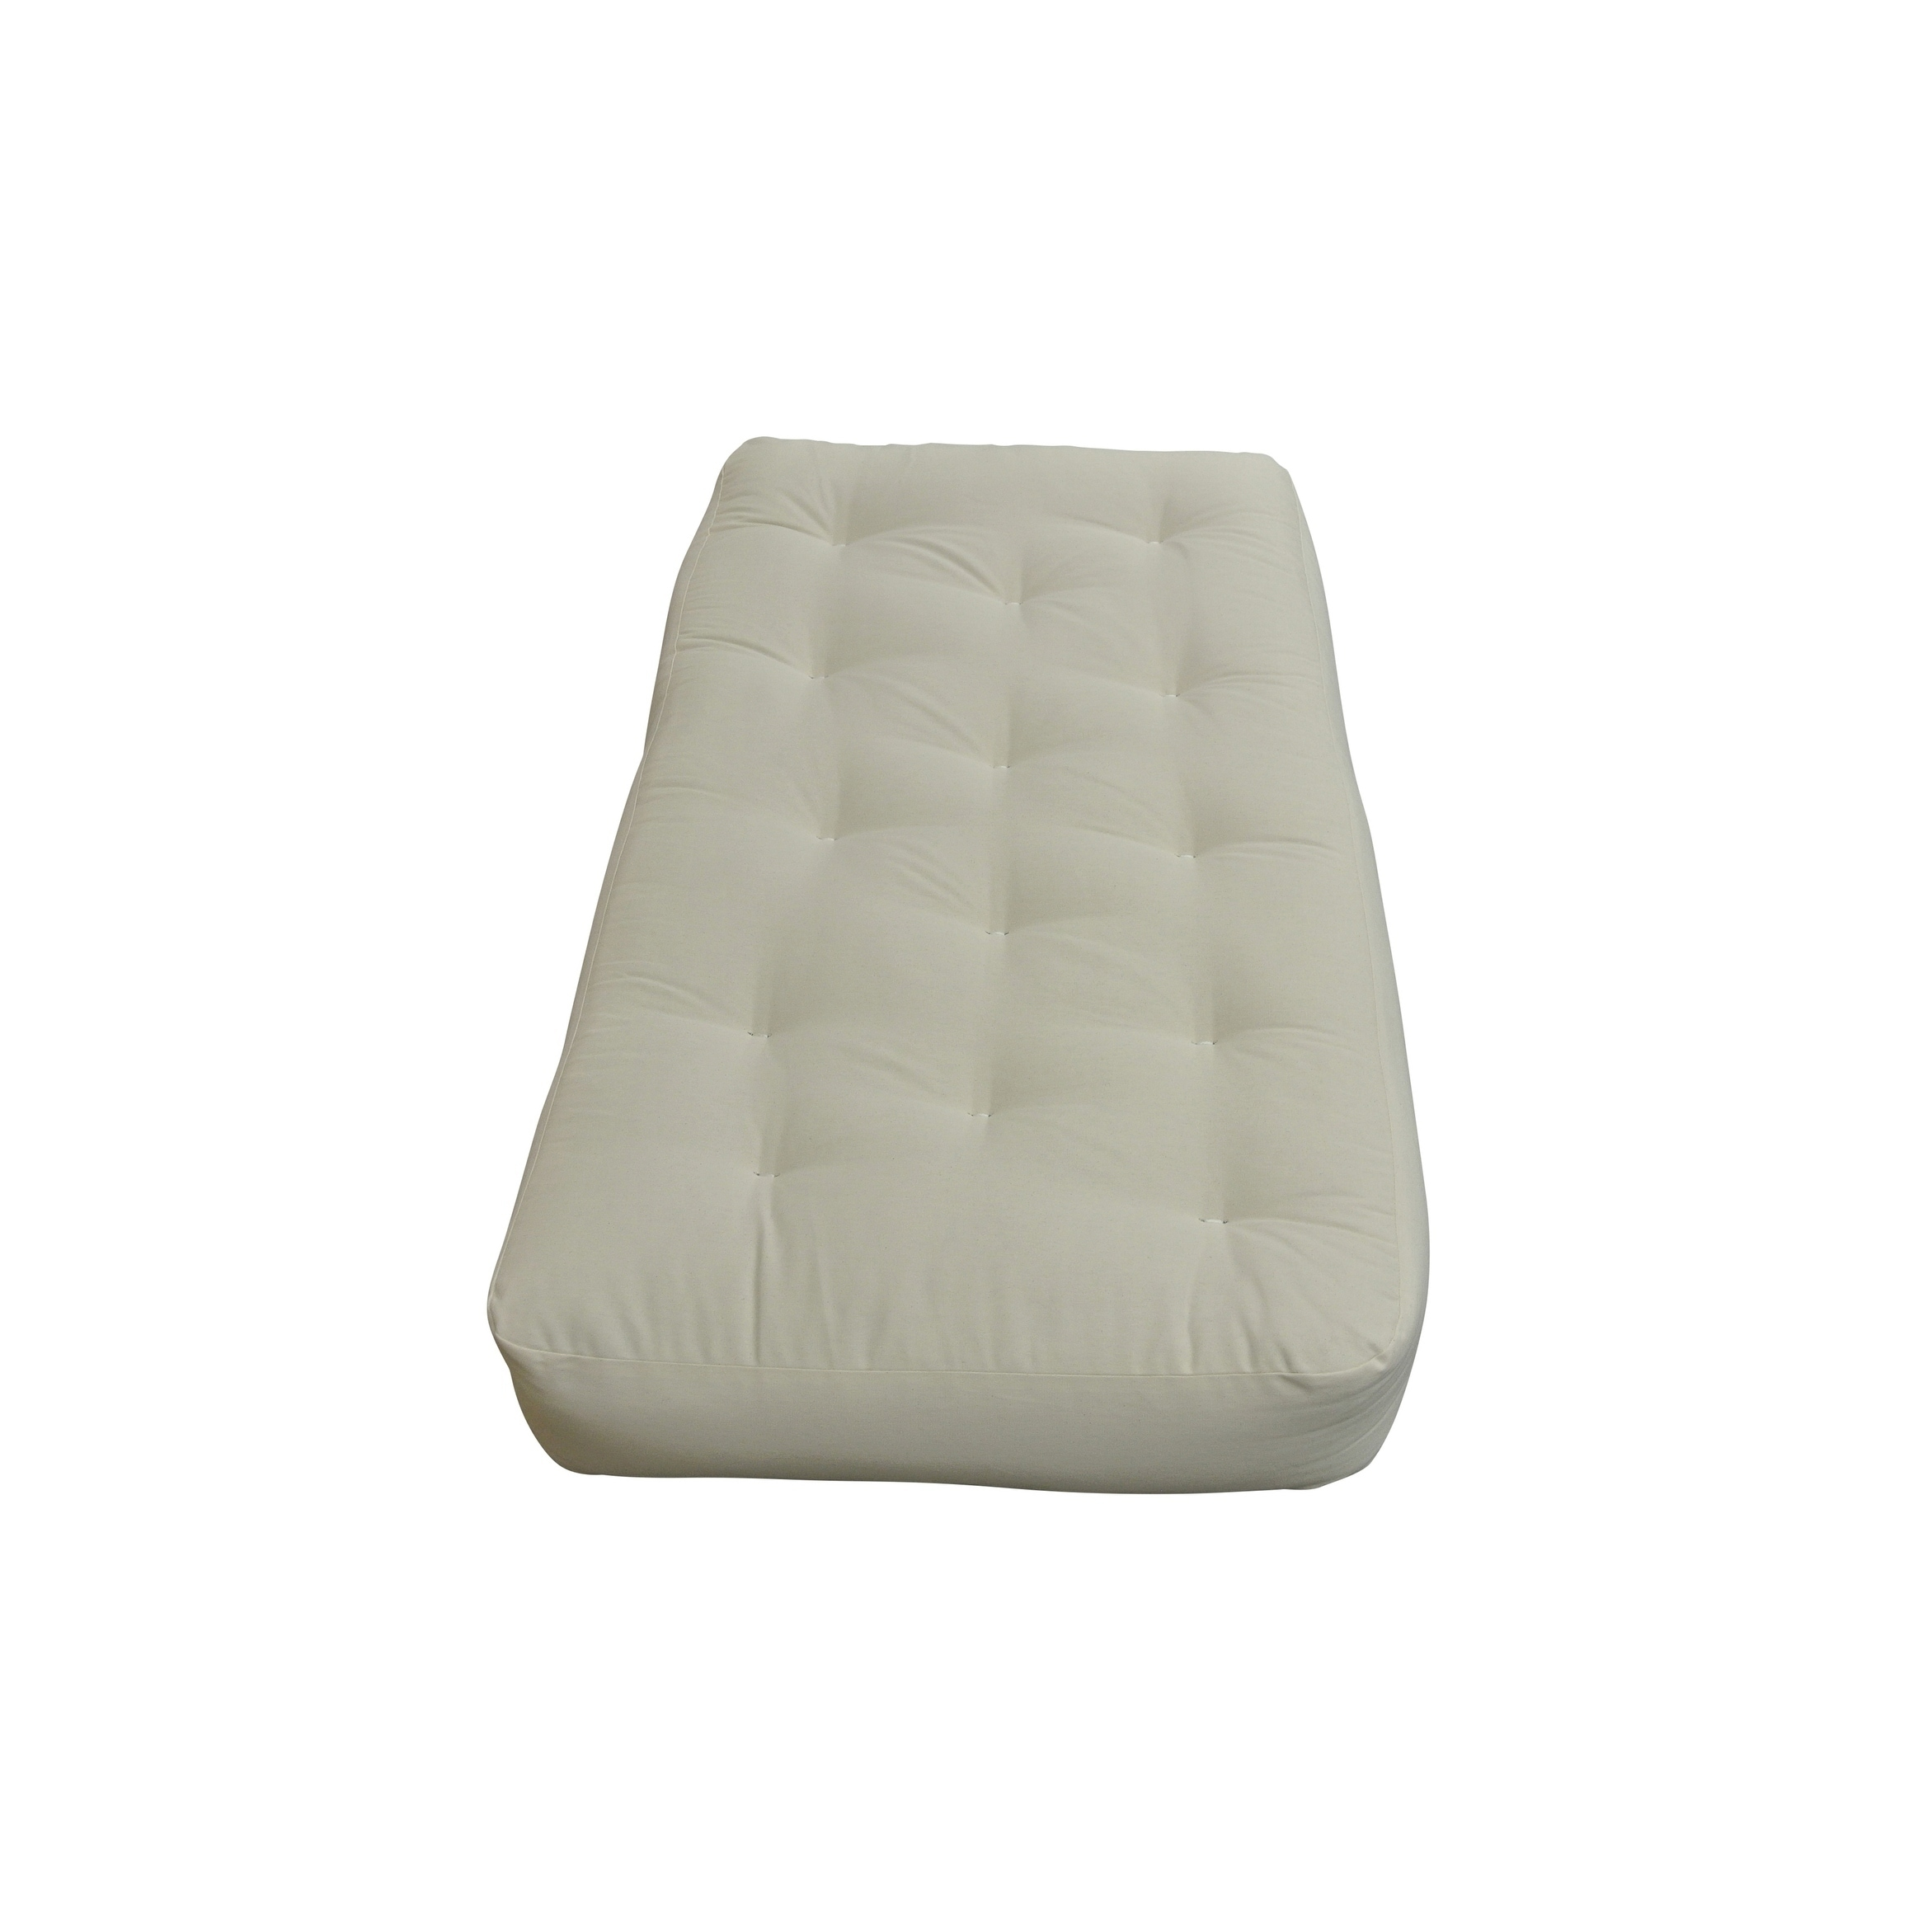 6 All Cotton Chair Natural Futon Mattress Free Shipping Today Com 17742835